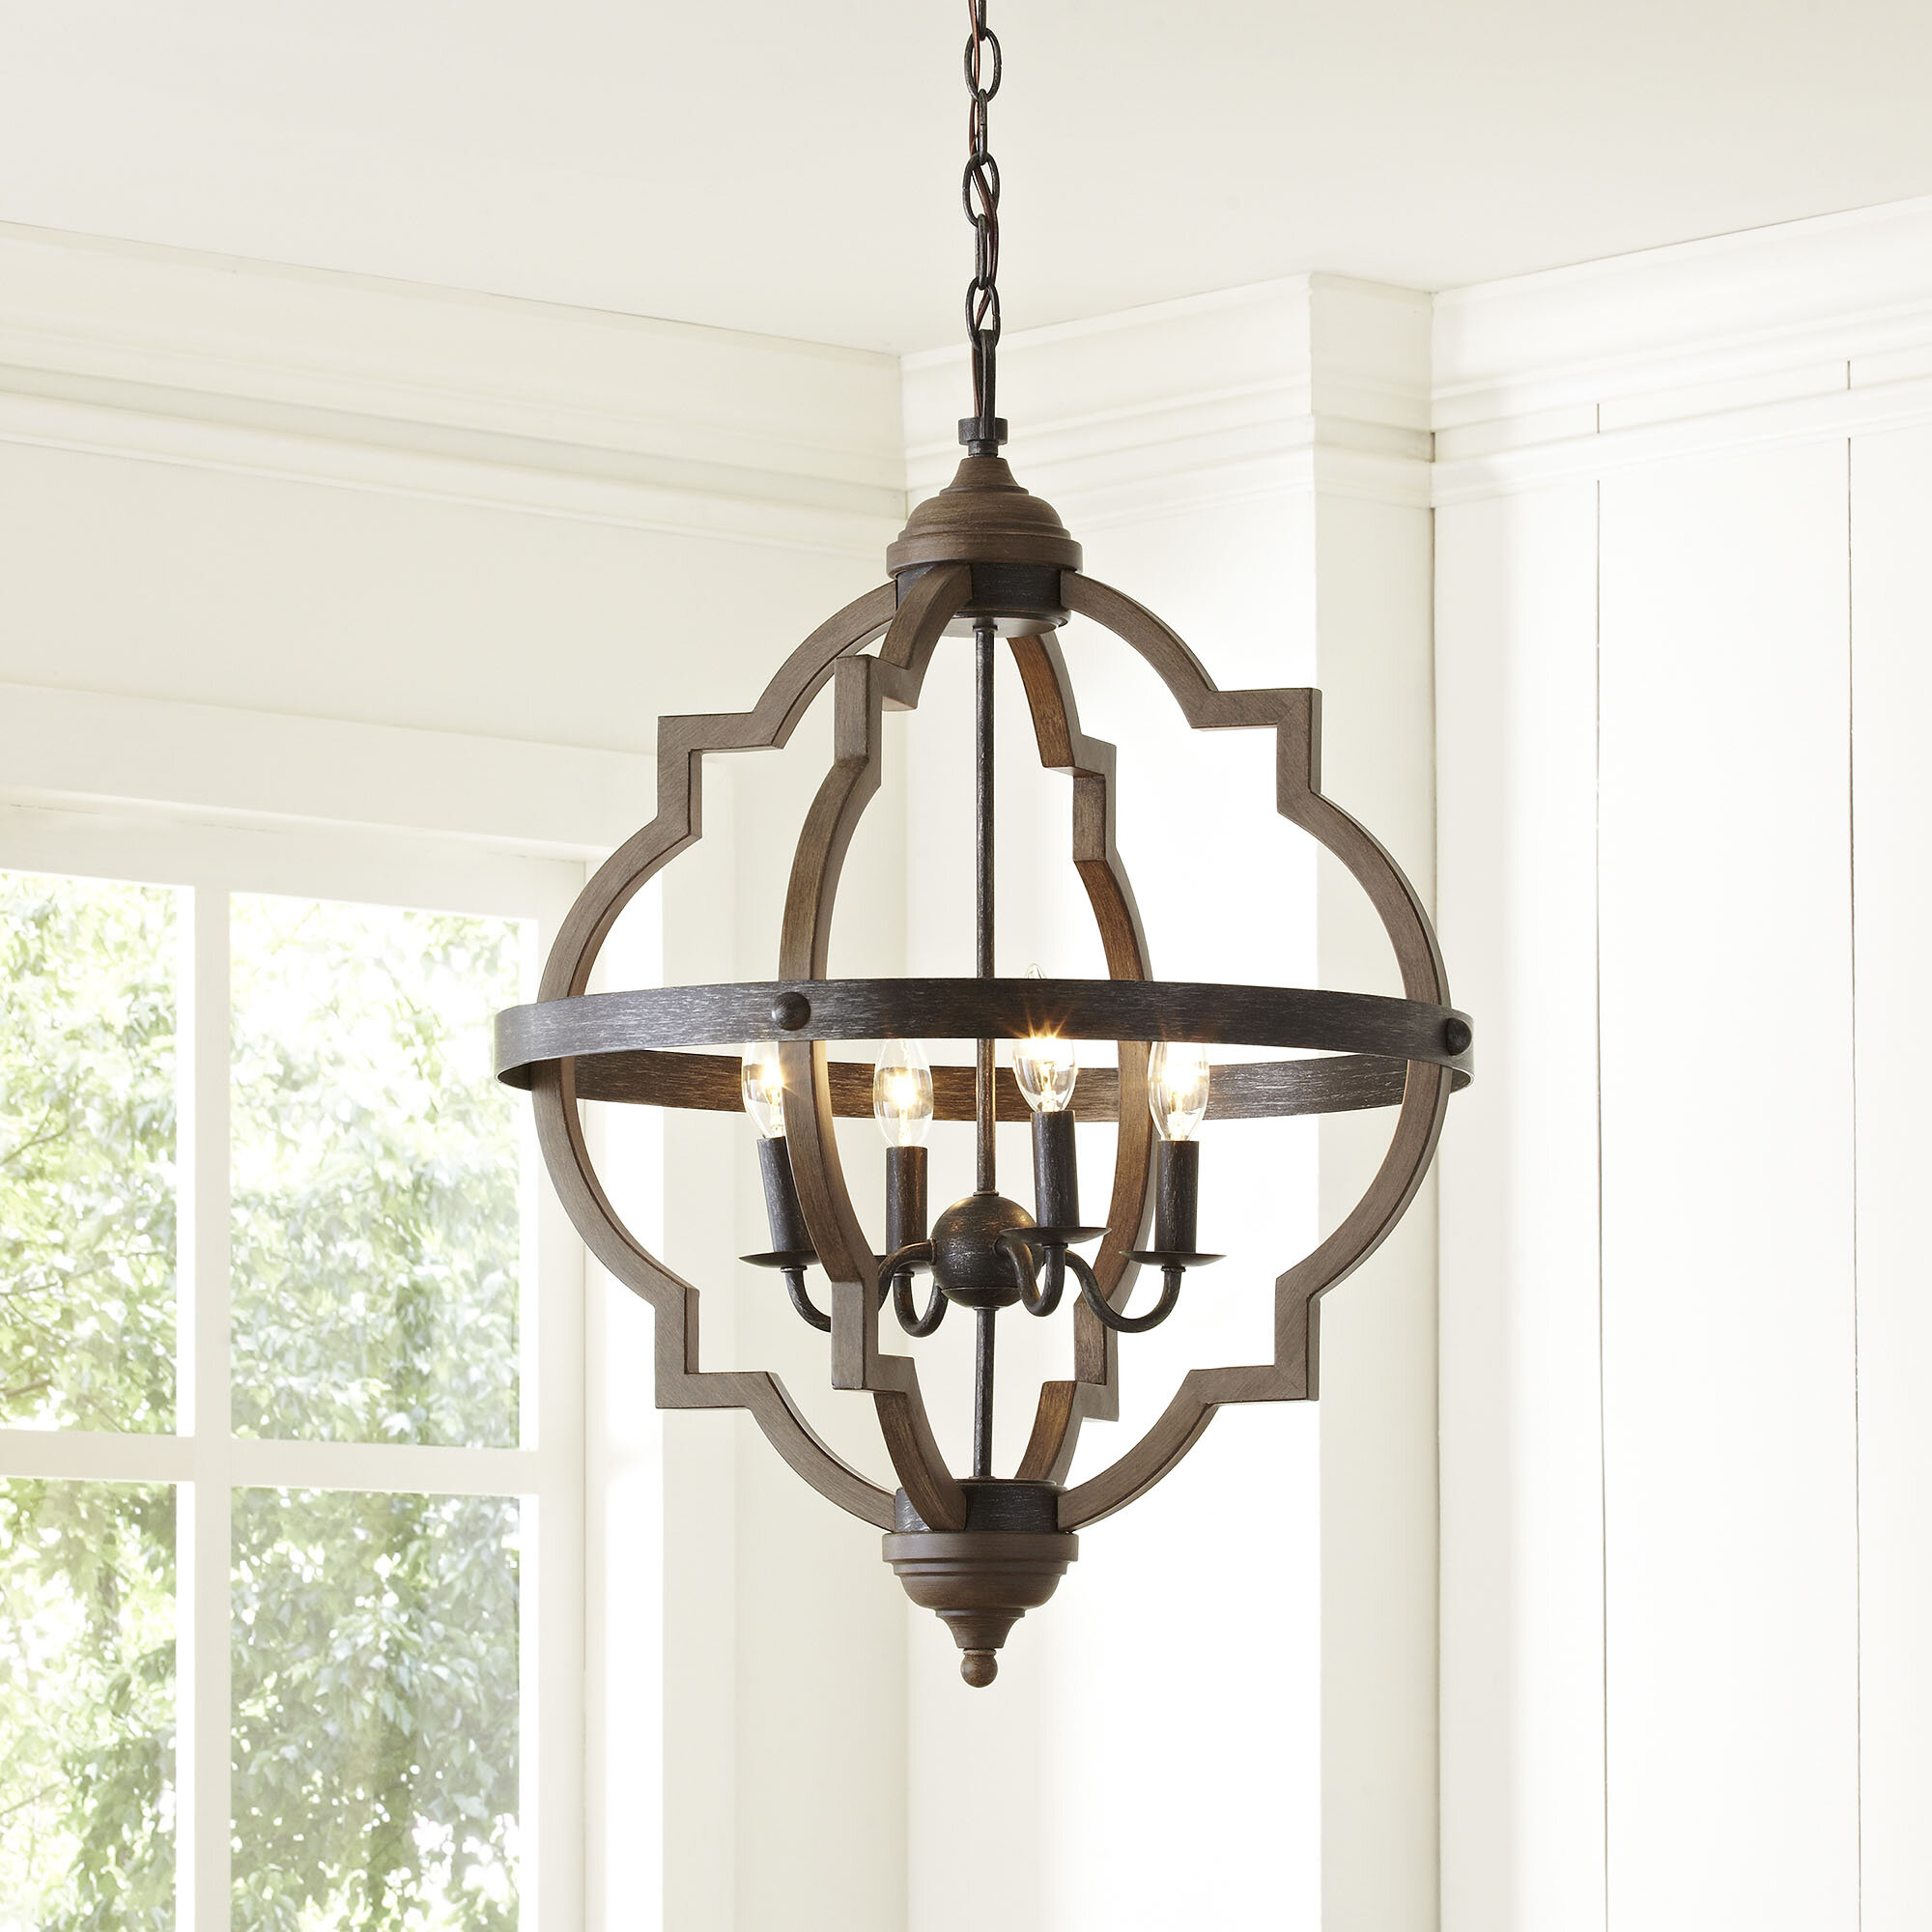 Chandeliers youll love wayfair bennington candle style chandelier aloadofball Gallery